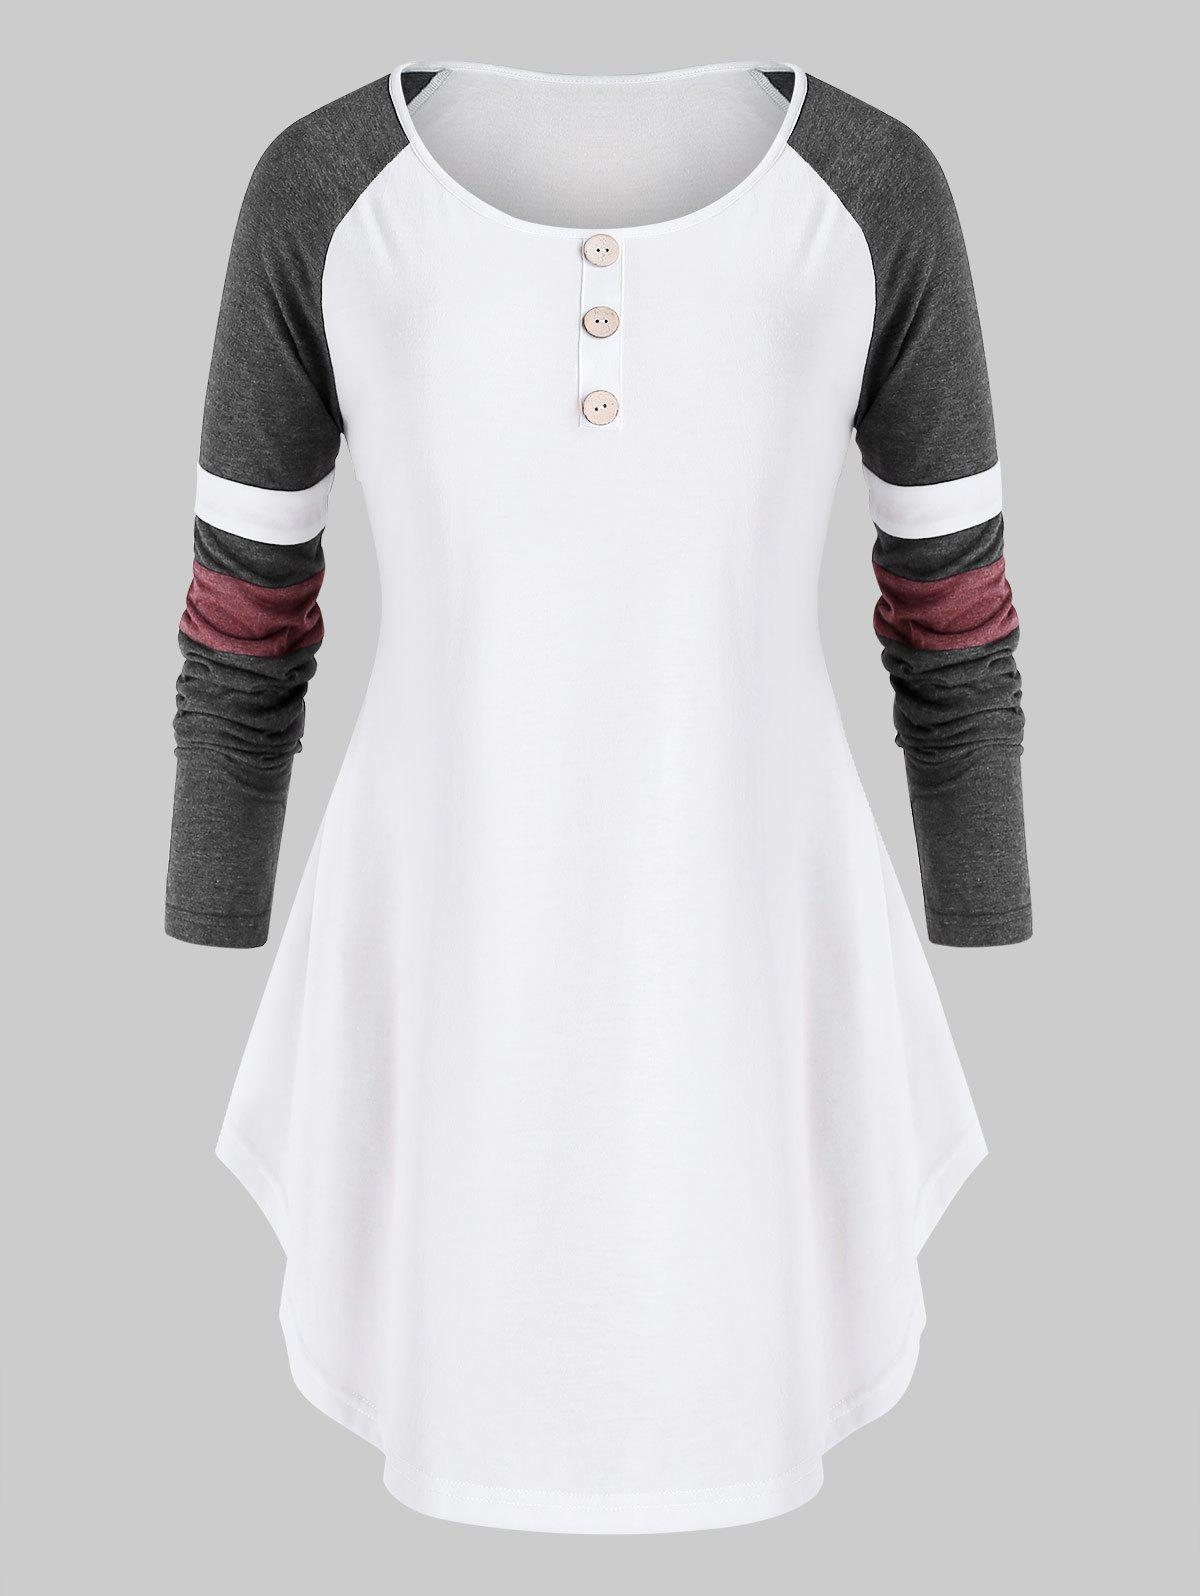 Fashion Plus Size Contrast Raglan Sleeve Curved T Shirt